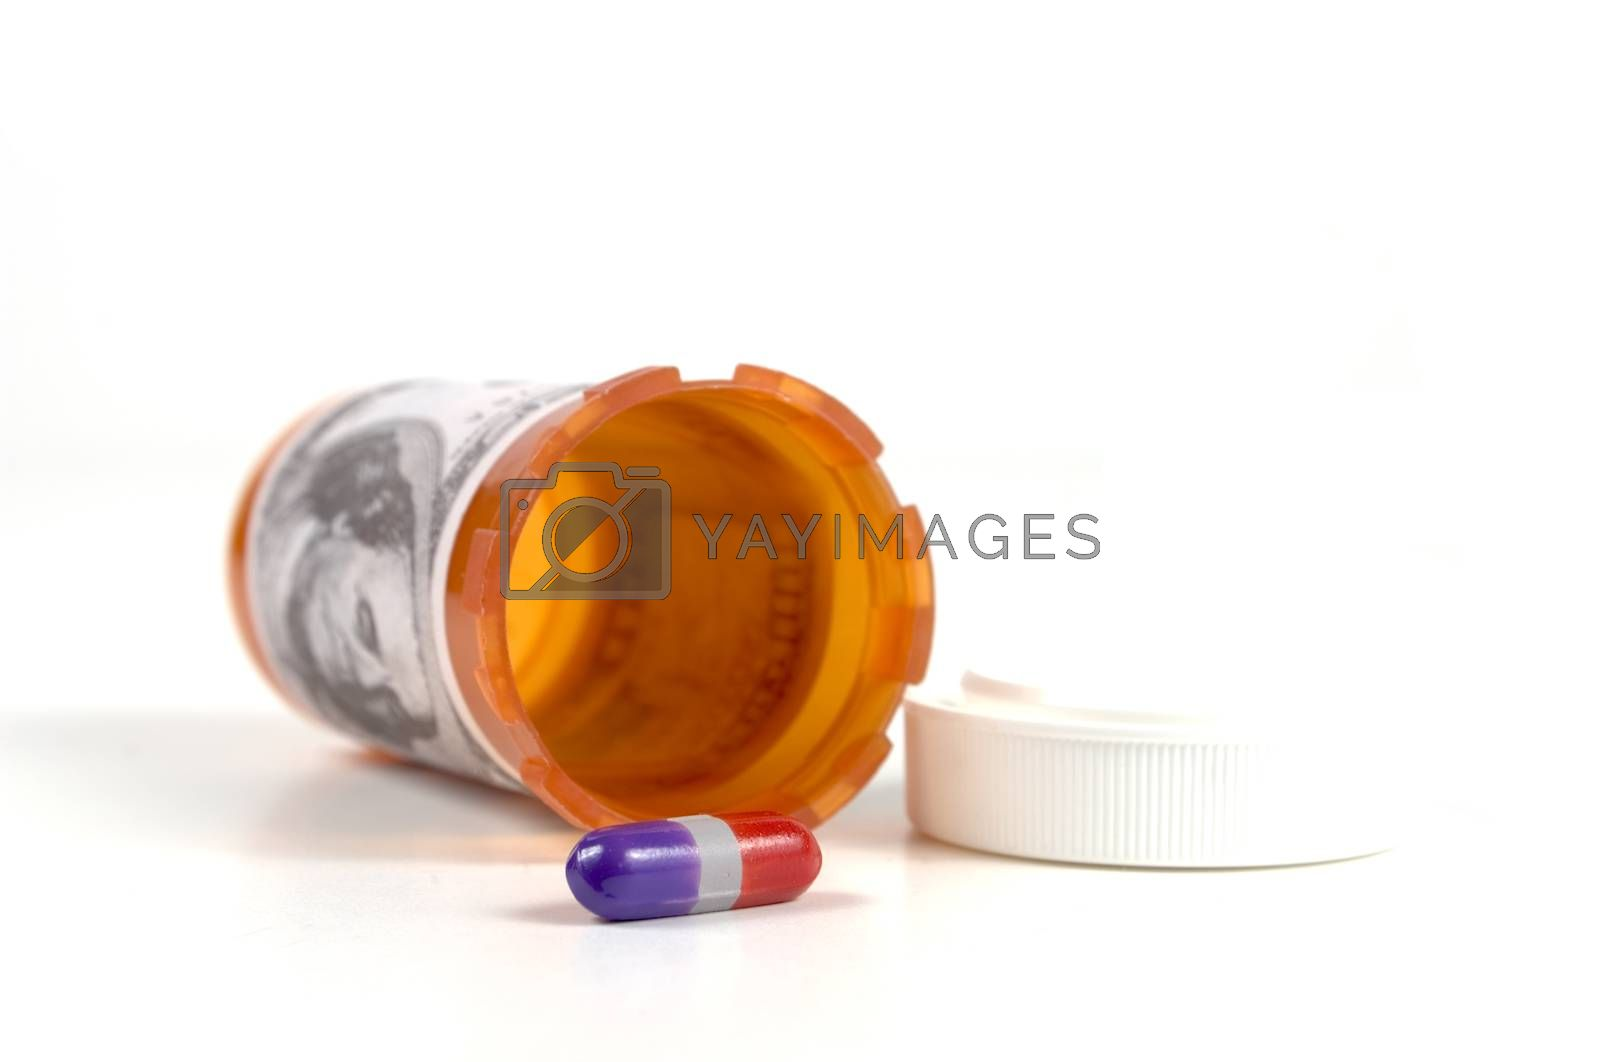 Royalty free image of Pill and Bottle by mothy20